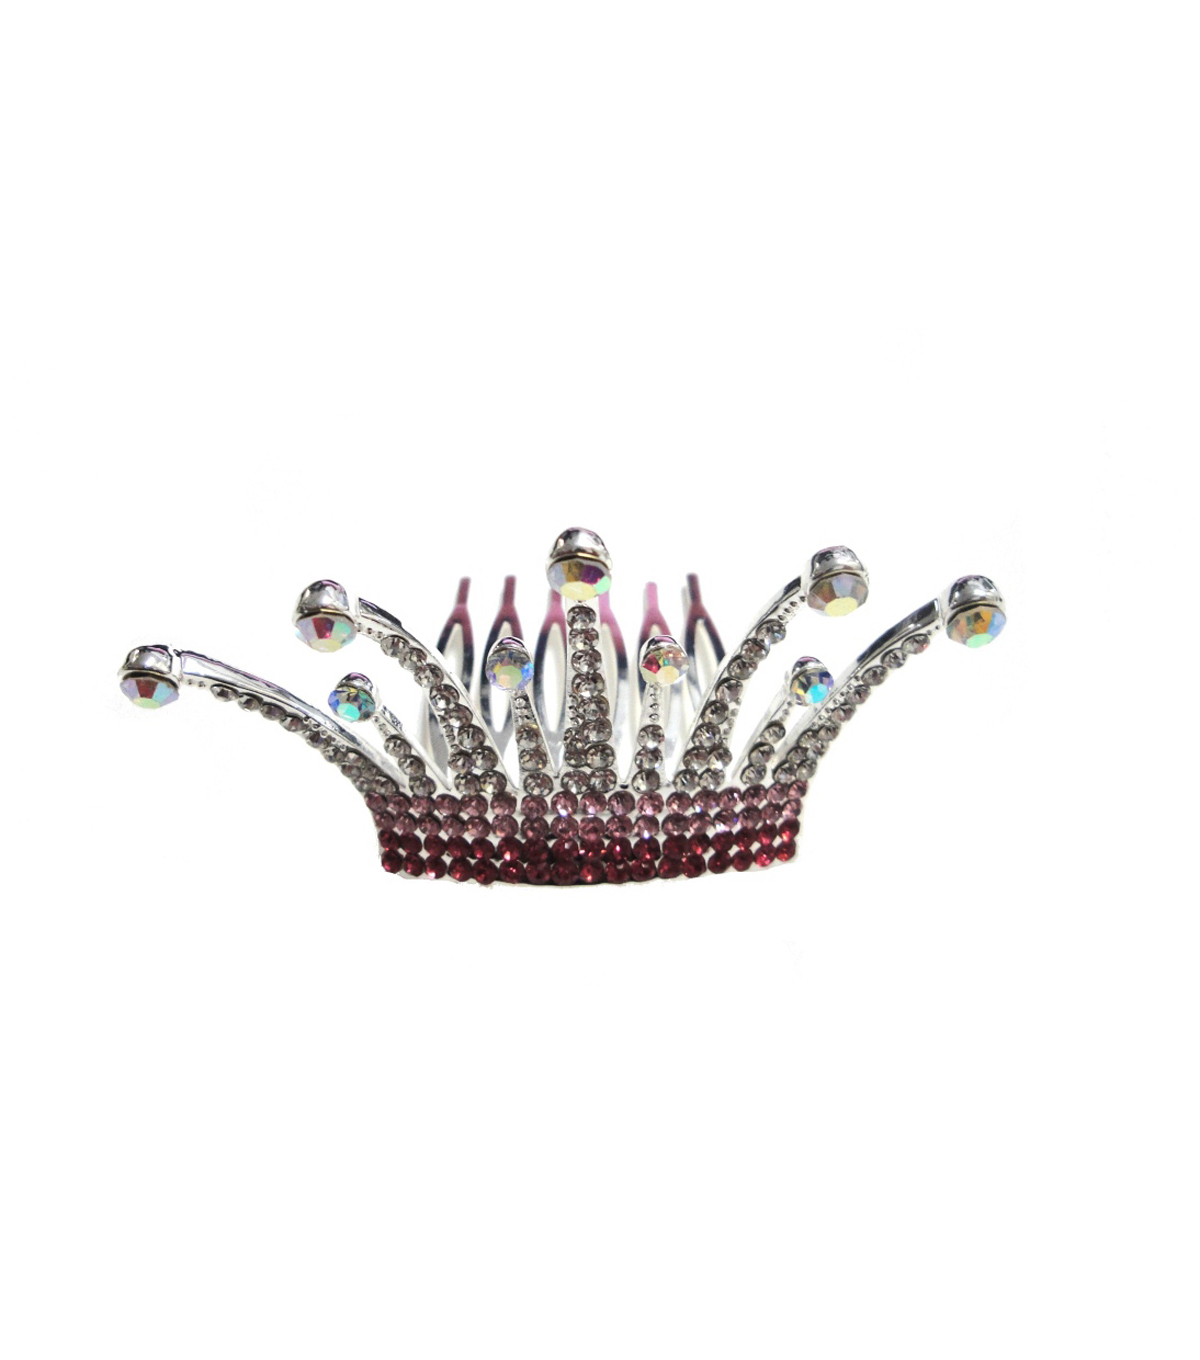 Maker's Halloween Diaden Tiara with Comb-Pink & Silver